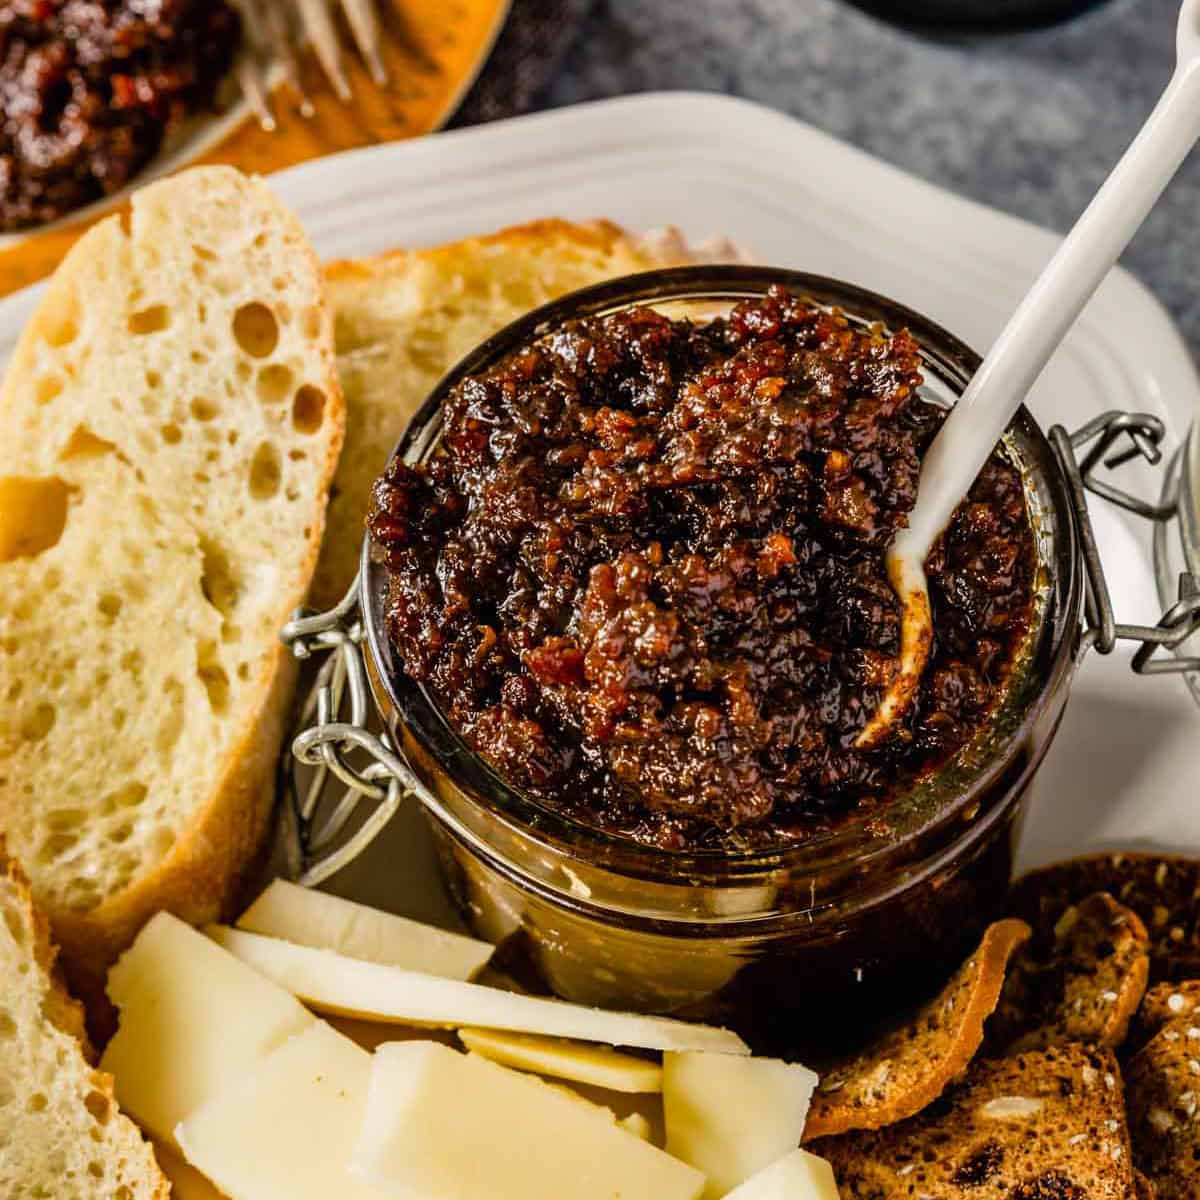 A glass jar of bacon jam on a white plate with a white spoon scooping the jam.